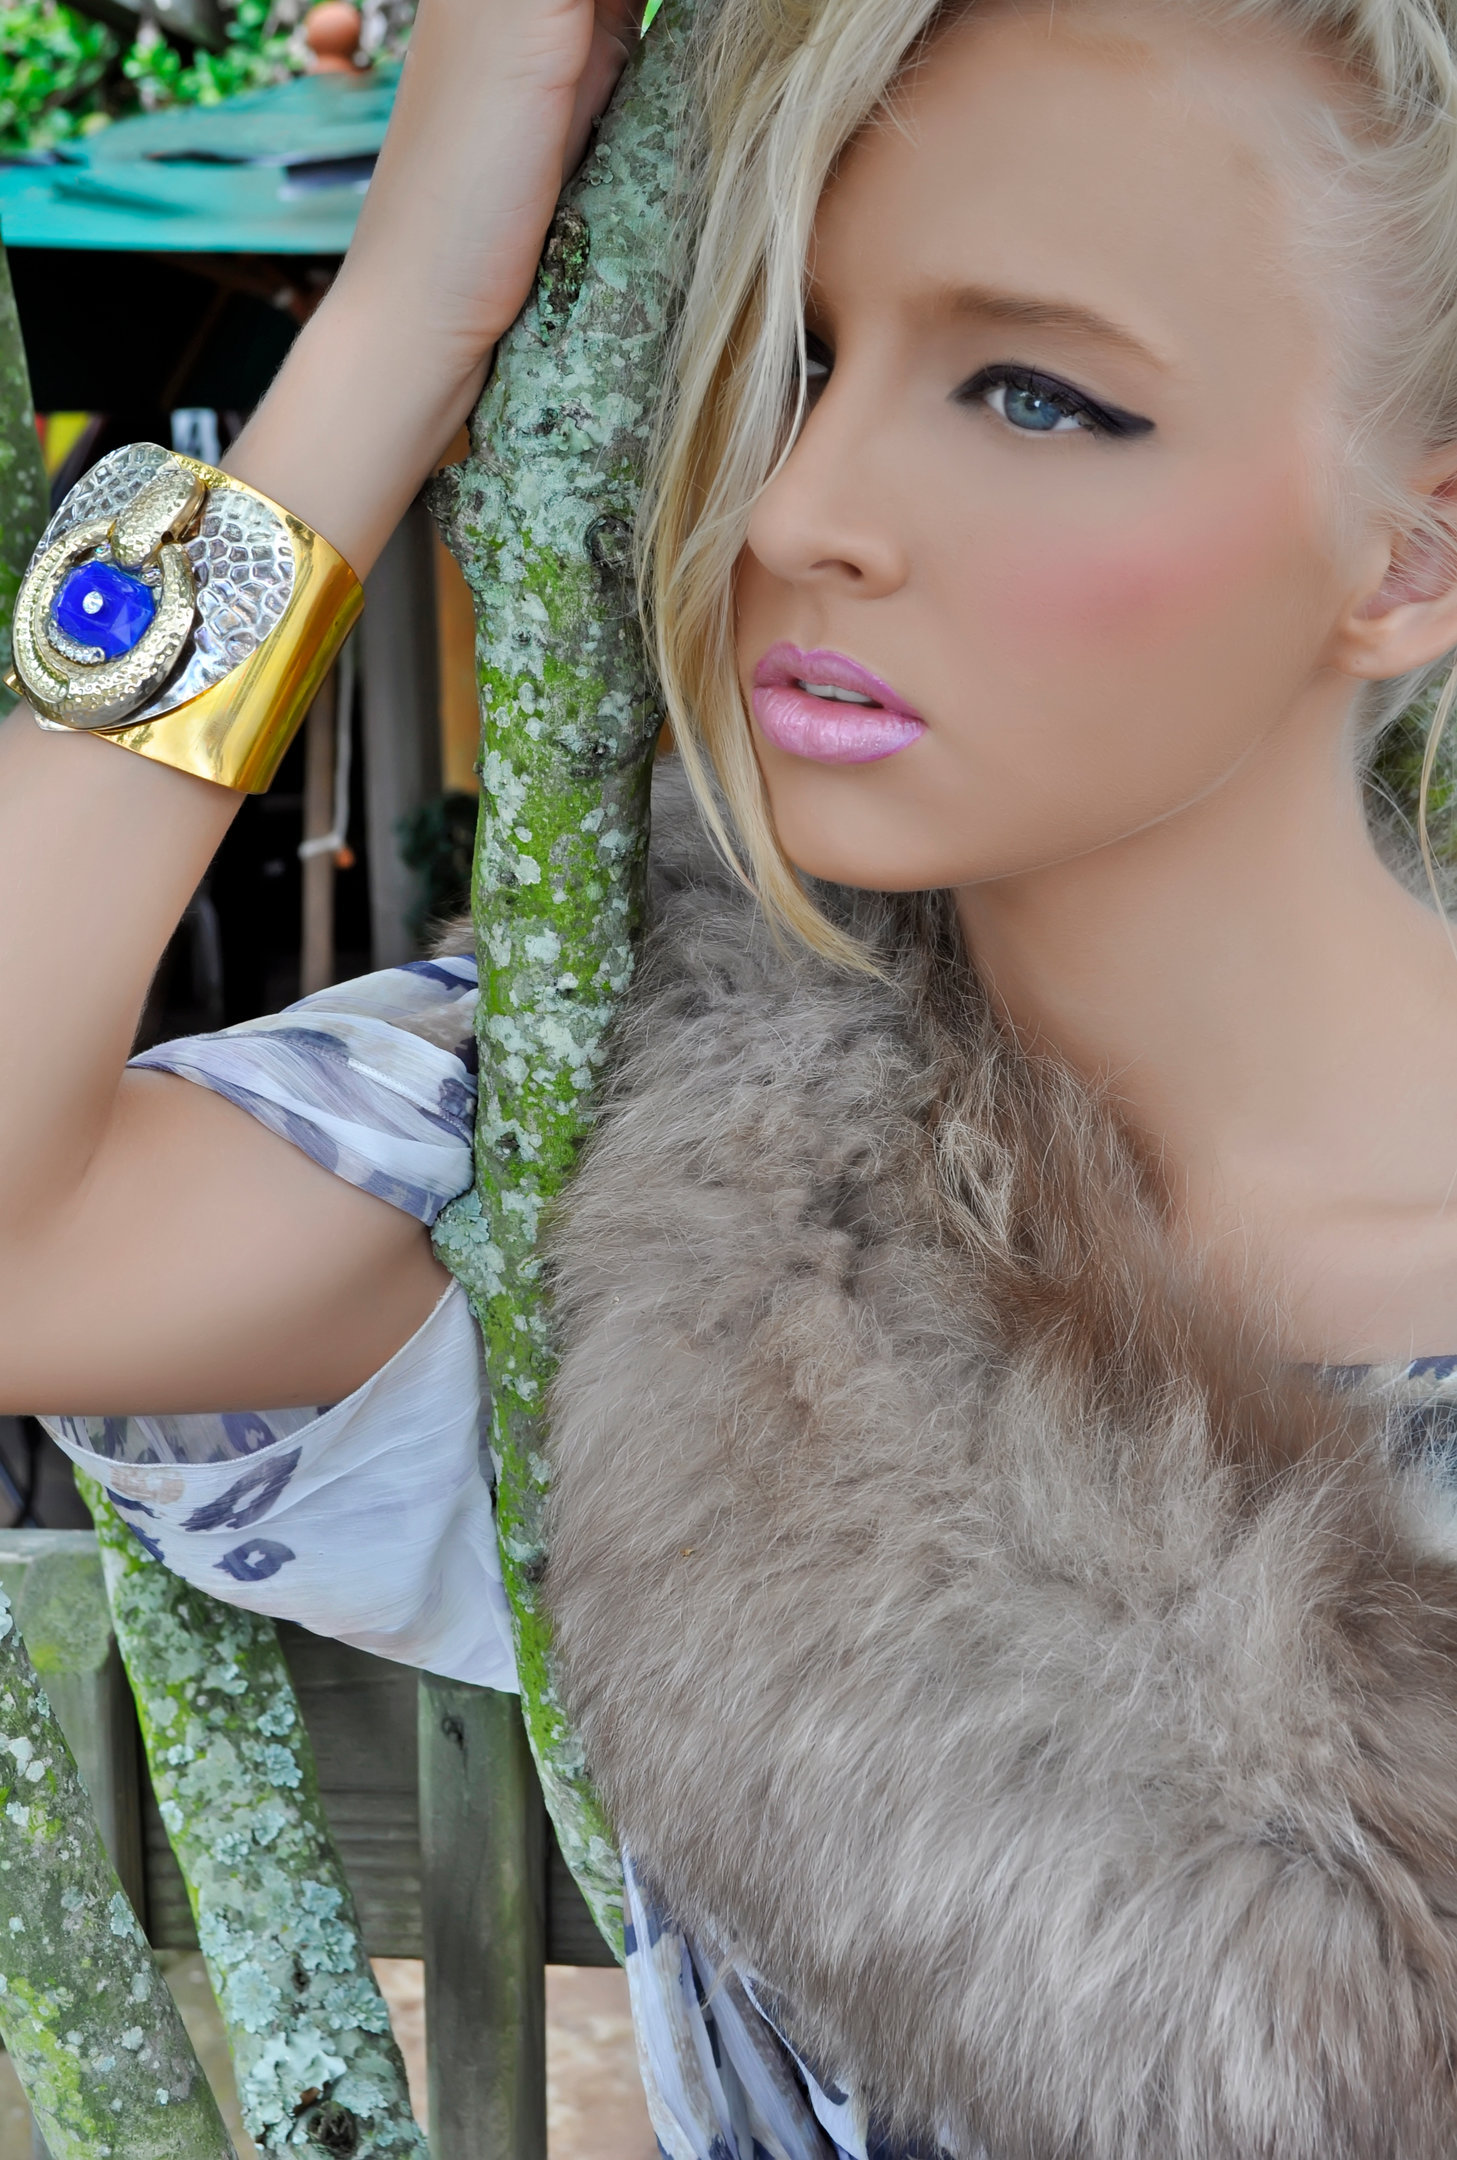 MISS NC COLLEGIATE AMERICA- Jessica Lucas is wearing a gold cuff with a blue stone and embellishments.